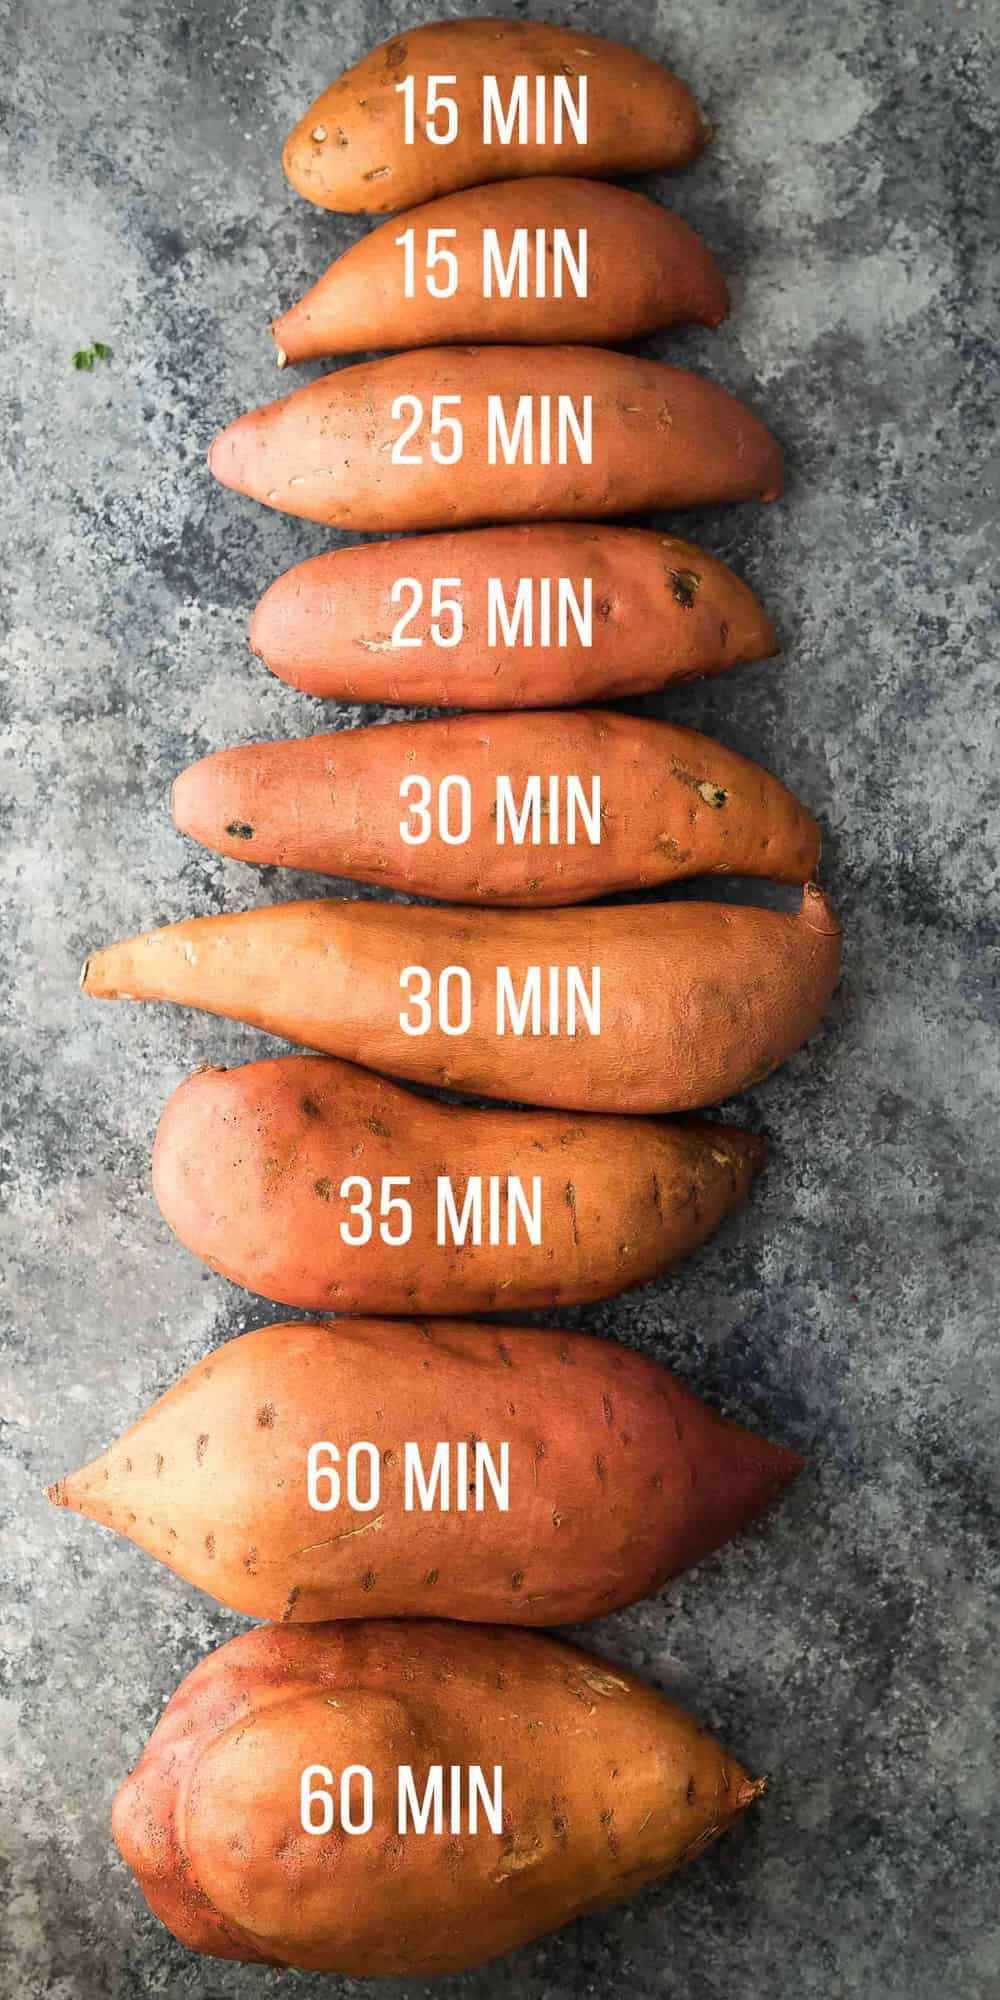 Instant Pot sweet potatoes- how to cook them to get perfect, creamy sweet potatoes in a fraction of the time it takes to roast them. Plus lots of ideas of how to use your pressure cooker sweet potatoes for meal prep! #sweetpeasandsaffron #instantpot #sweetpotatoes